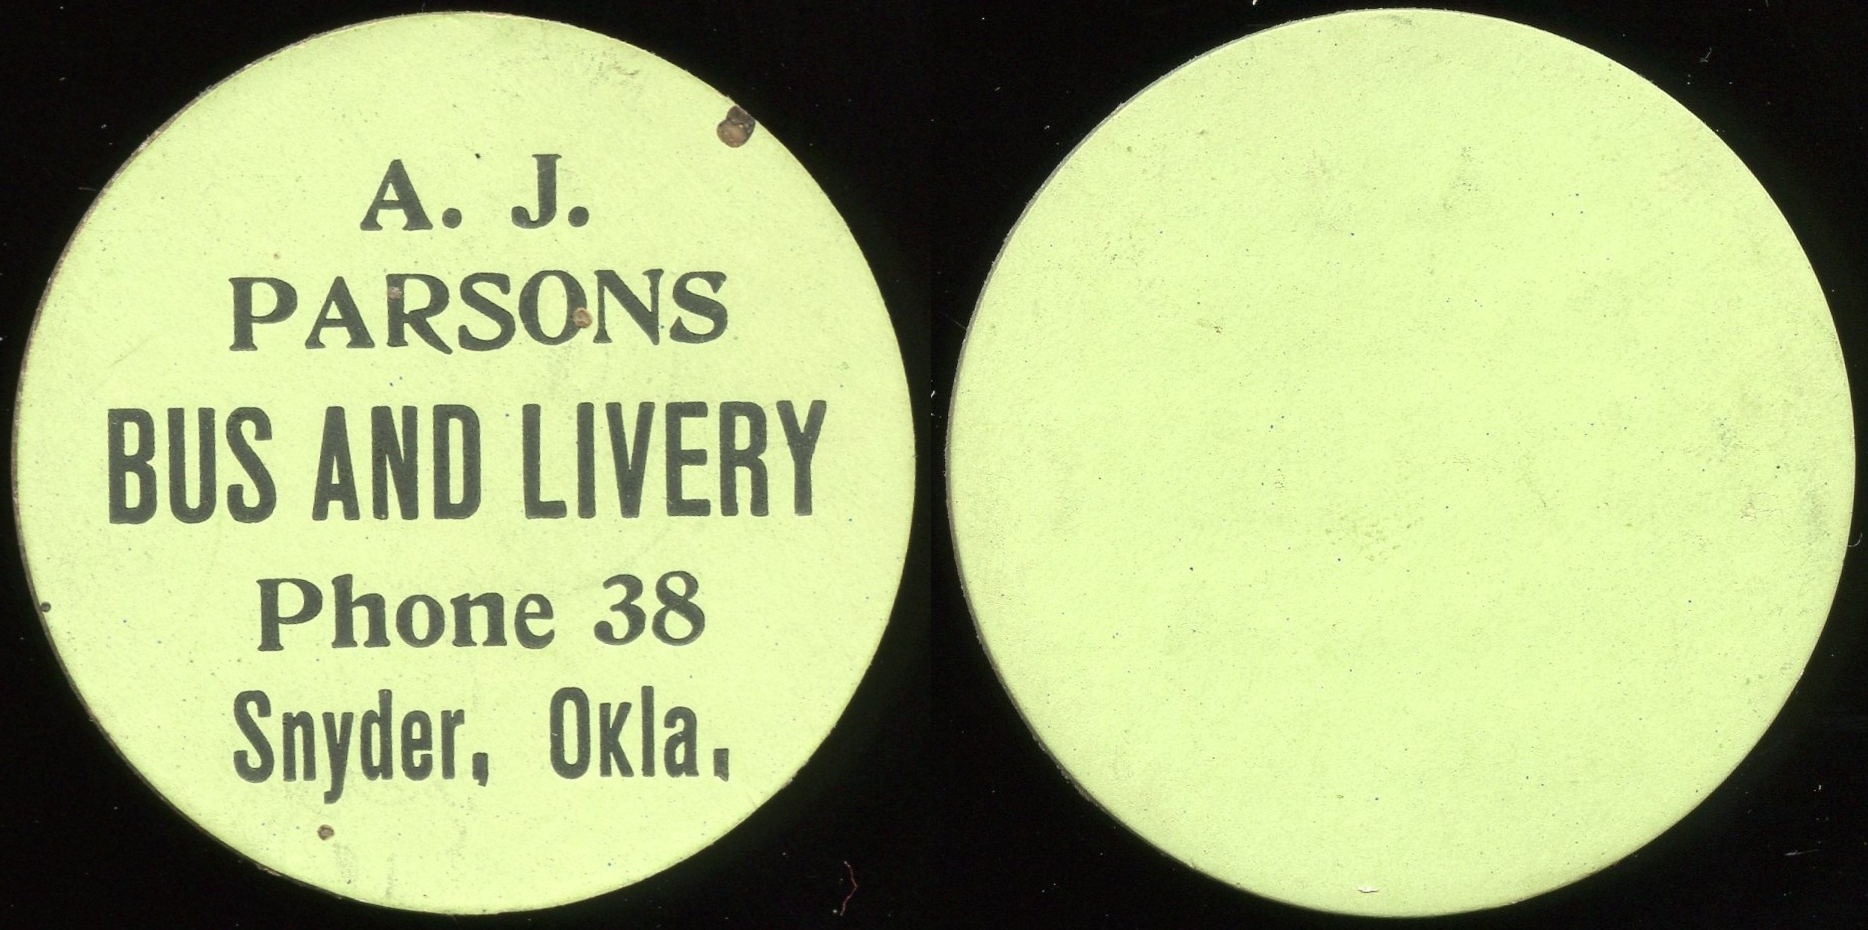 TRANSPORTATION - Oklahoma Lot 130:  A.J. / PARSONS / BUS AND LIVERY / PHONE 38 / SNYDER, OKLA. // (blank), black imprint green cdbd rd 38mm.  Listed OK 805A $150  MB$150 - No Bid